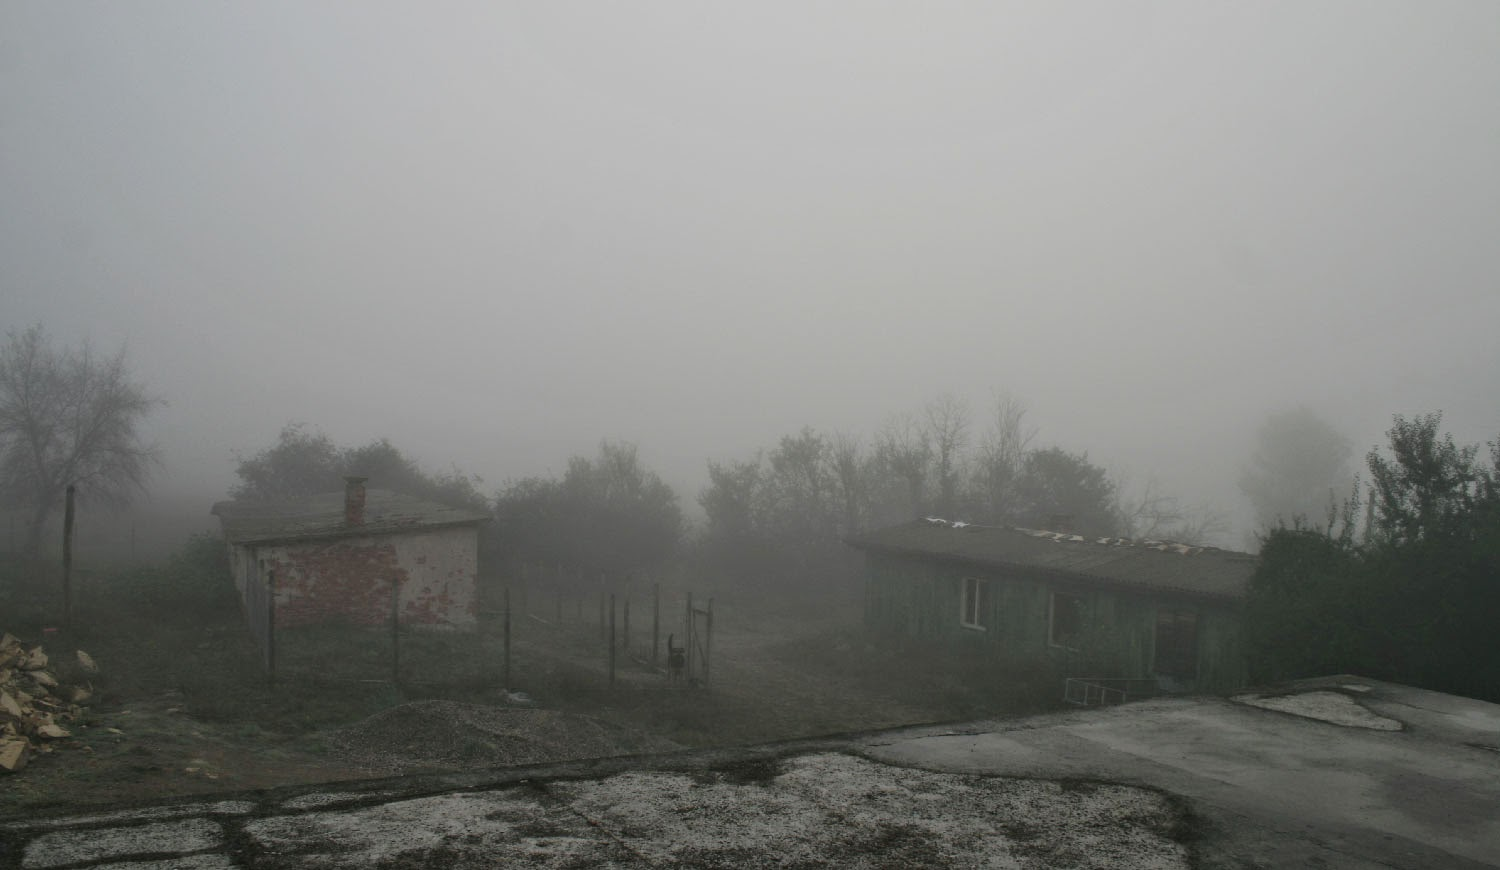 A really thick fog this morning